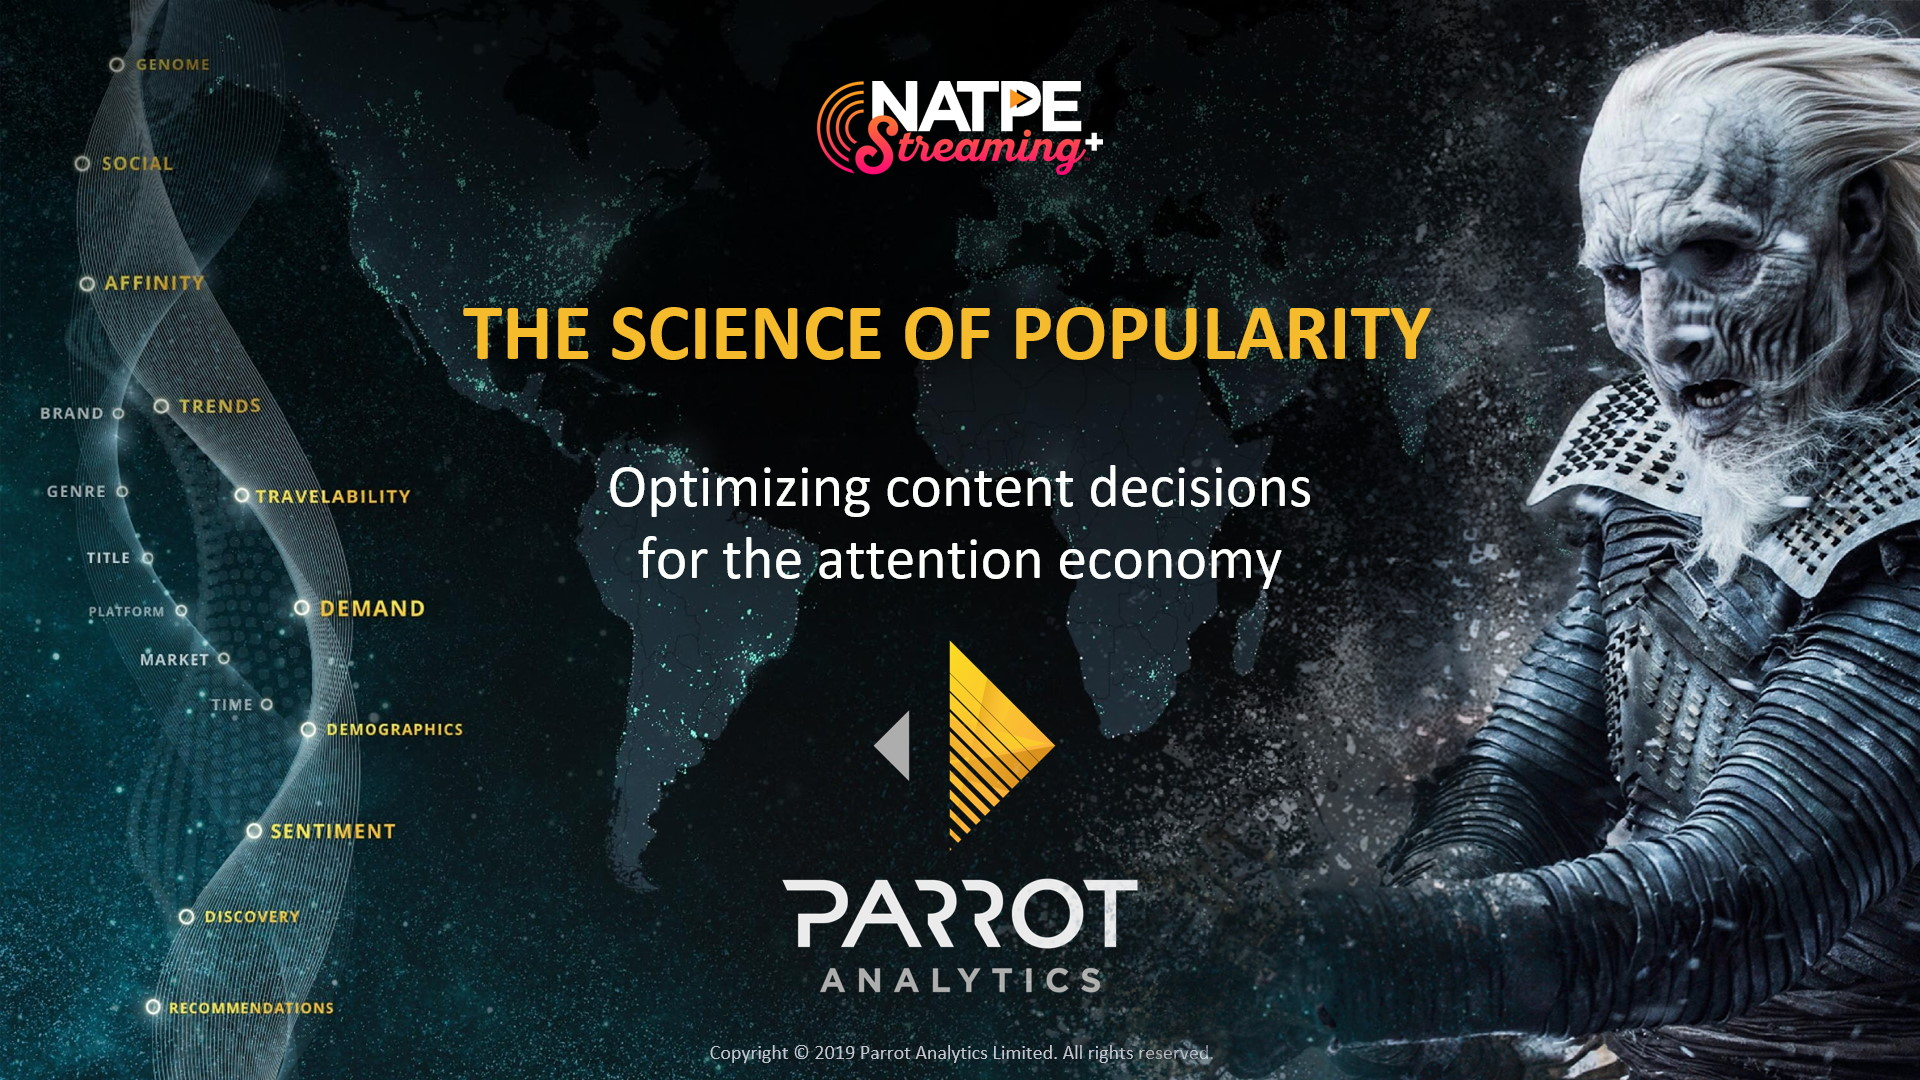 NATPE Streaming+ Keynote Presentation 2019